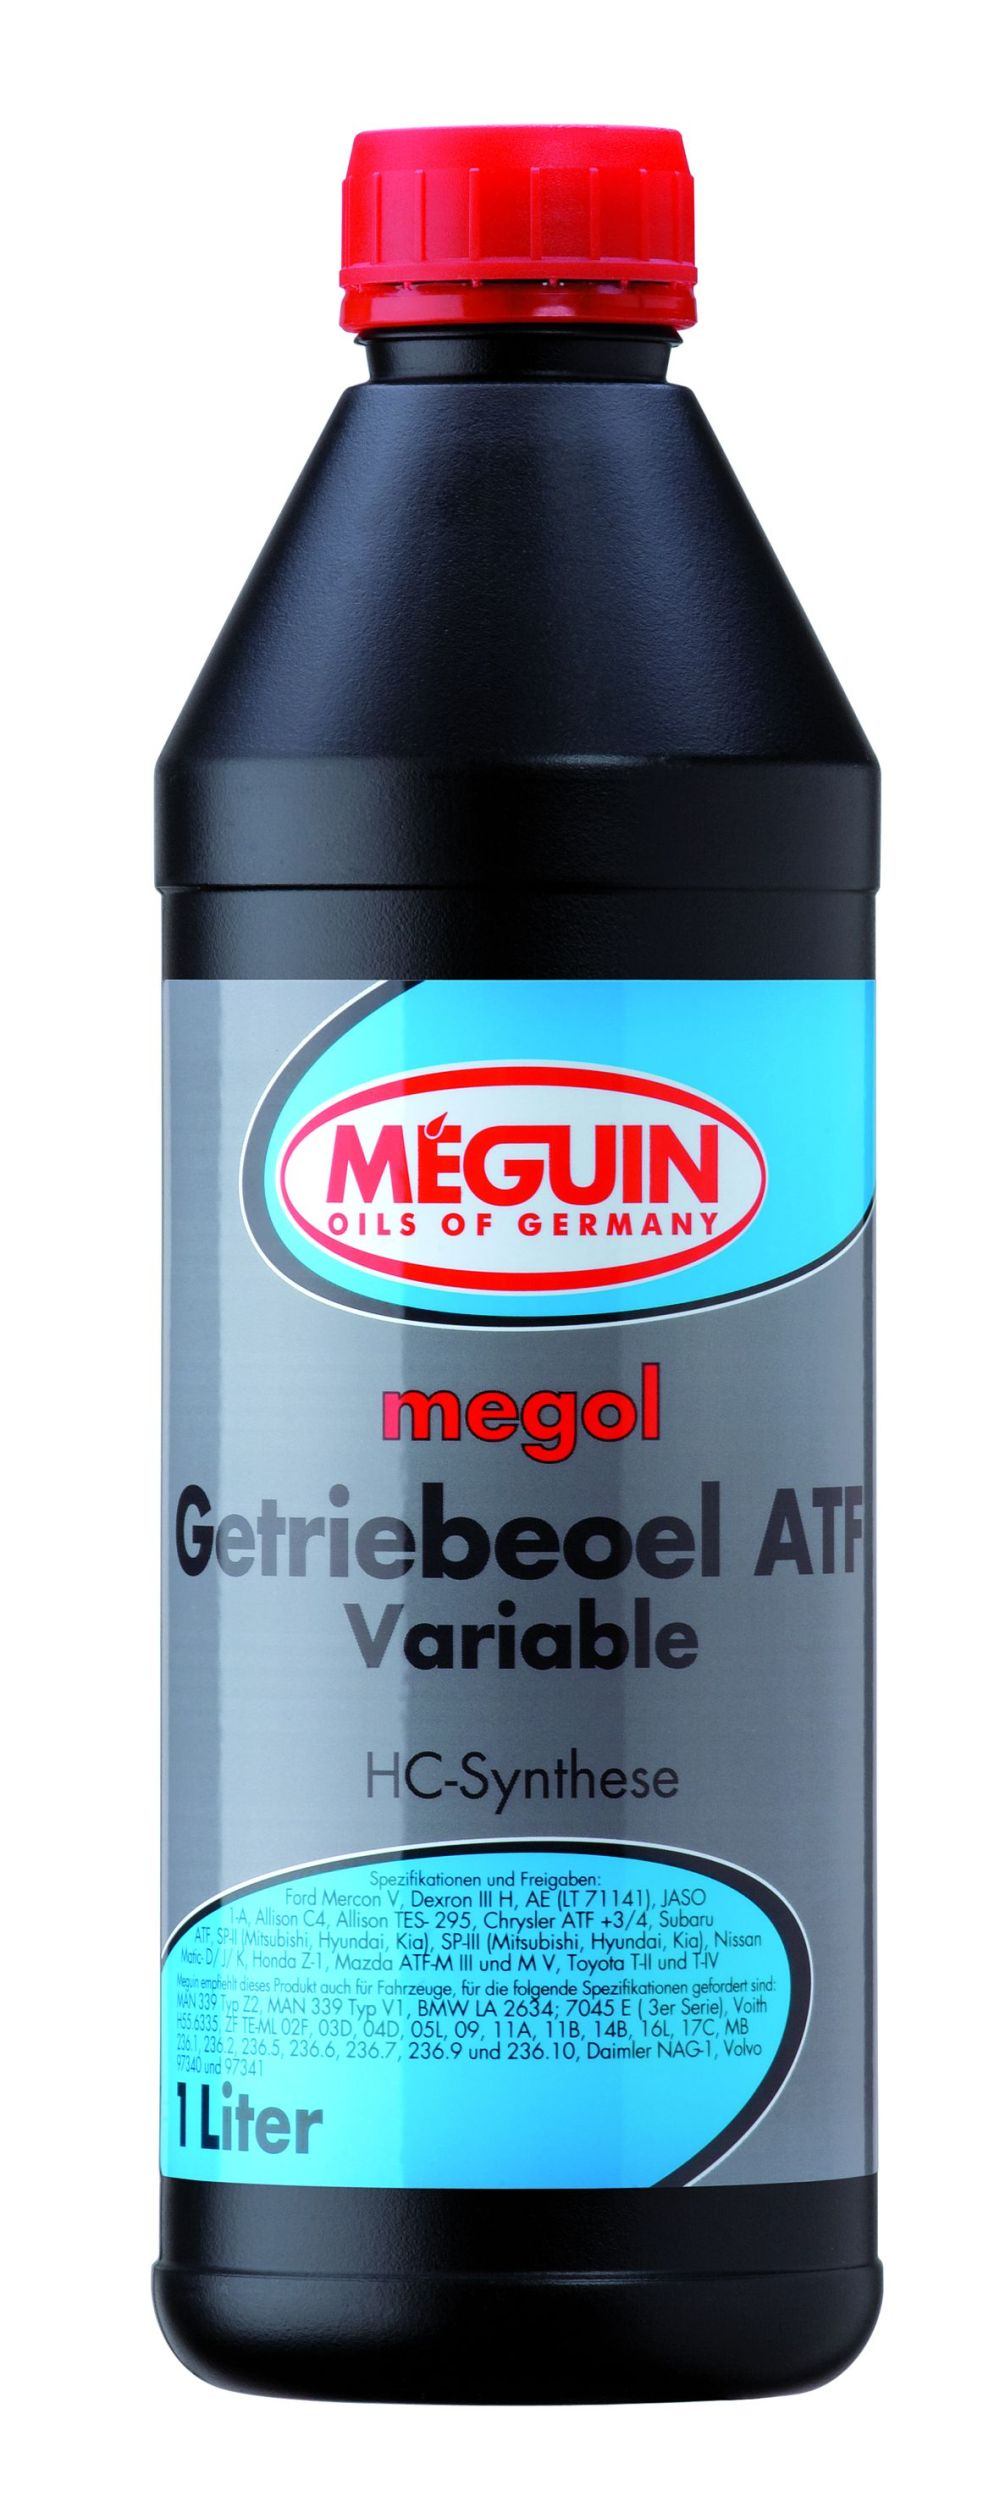 Meguin Getriebeoel ATF Variable 20L